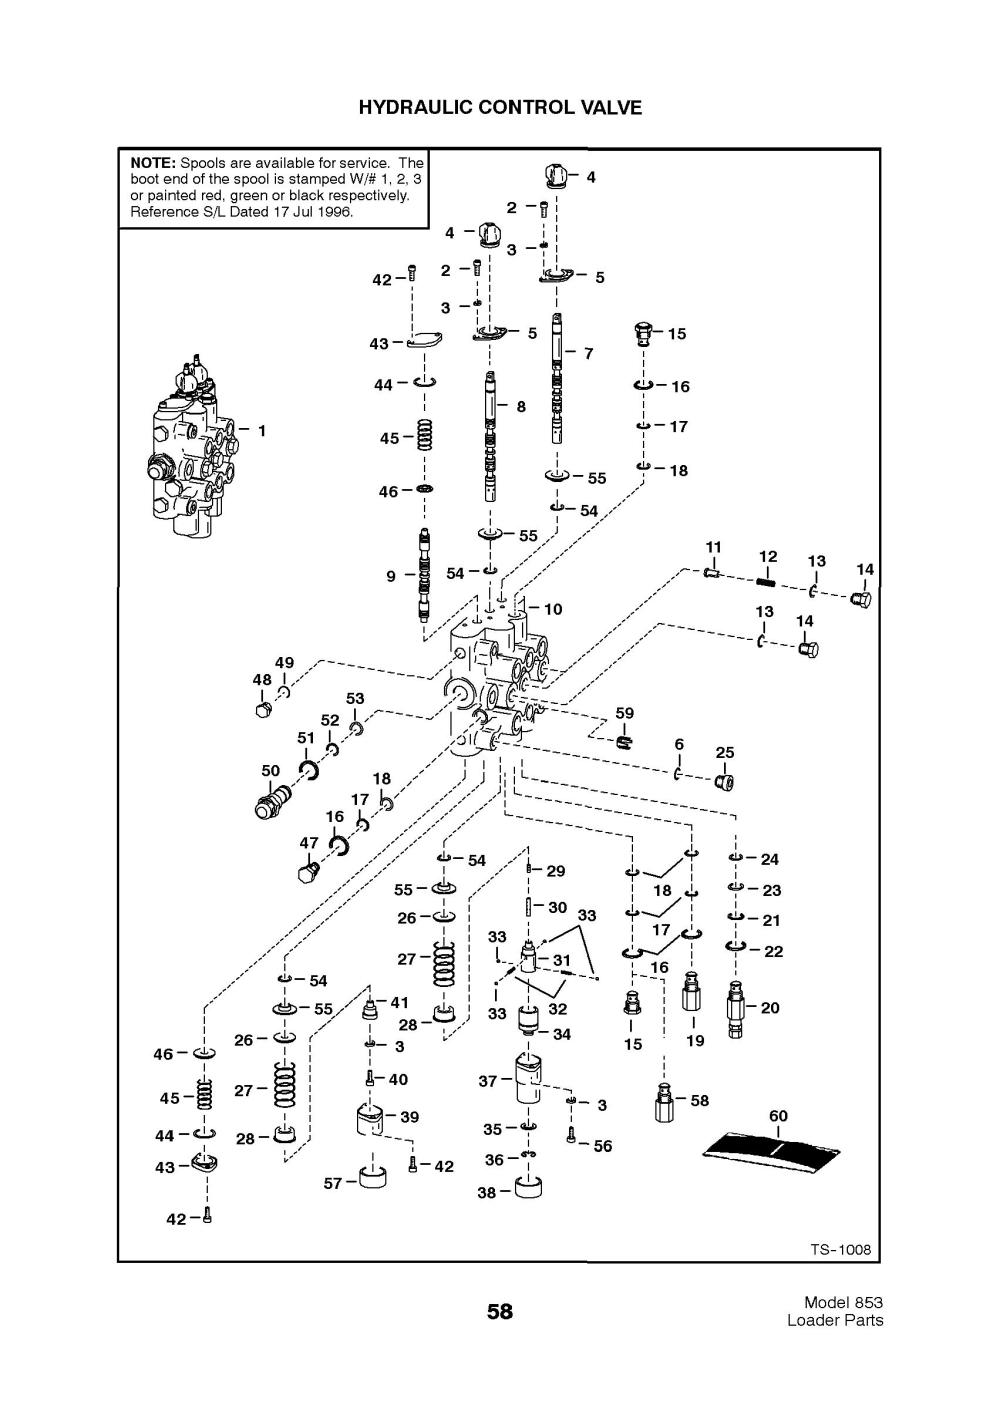 medium resolution of bobcat hydraulic schematic schema diagram database bobcat 773 hydraulic diagram 773 bobcat hydraulic diagram